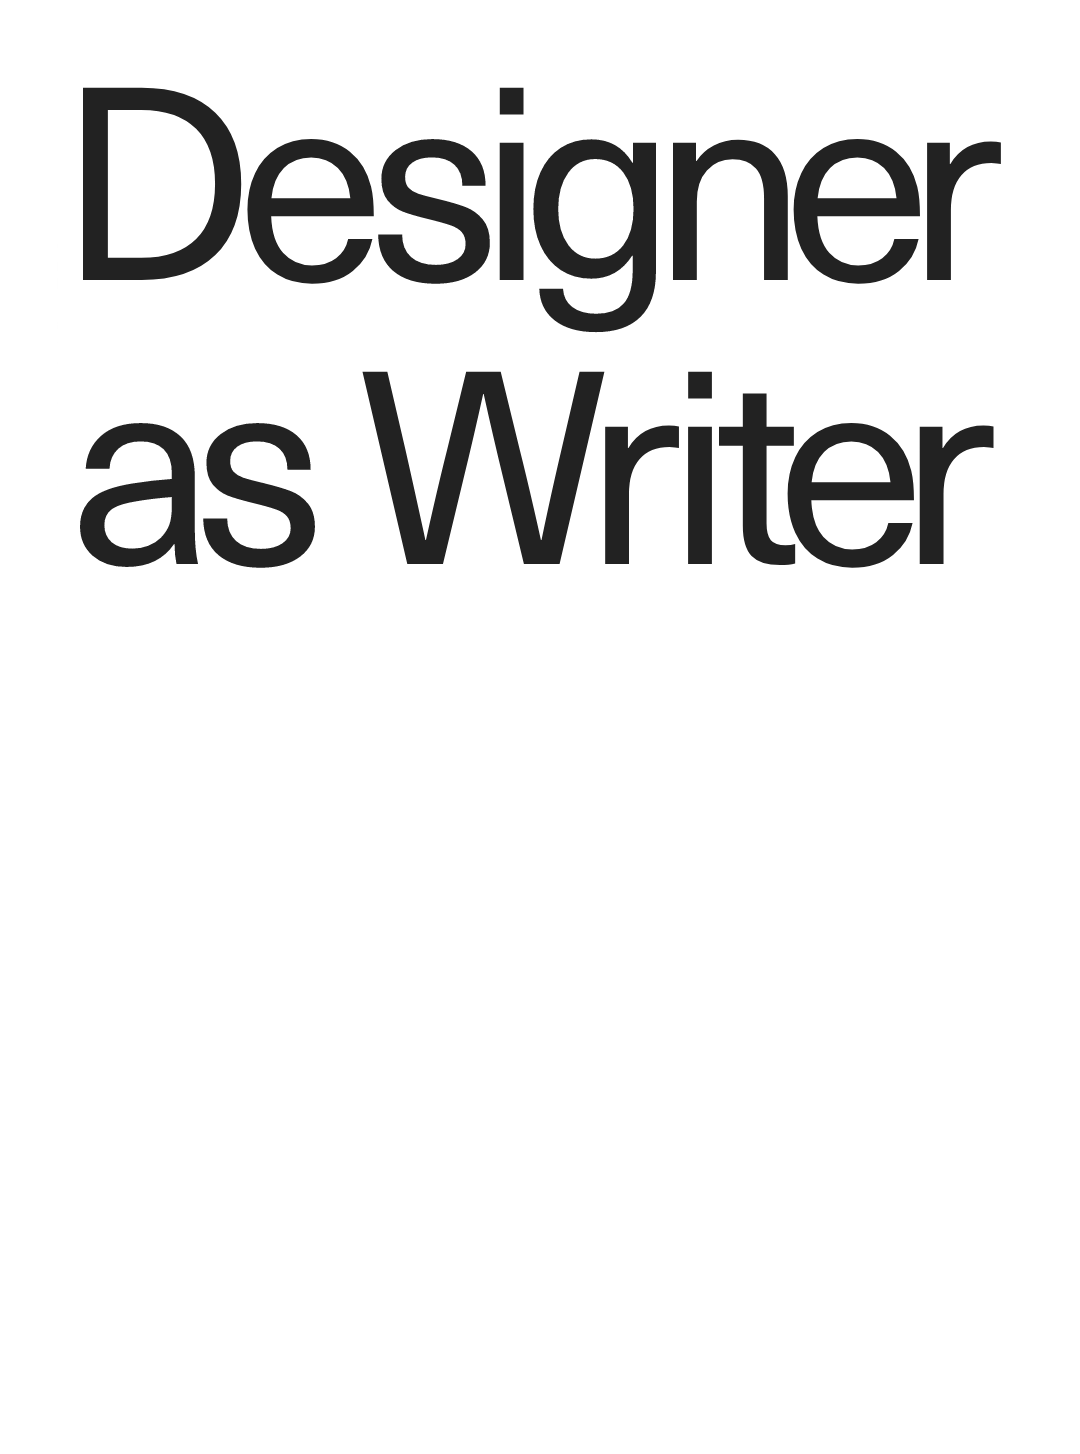 Designer as writer: shared principles